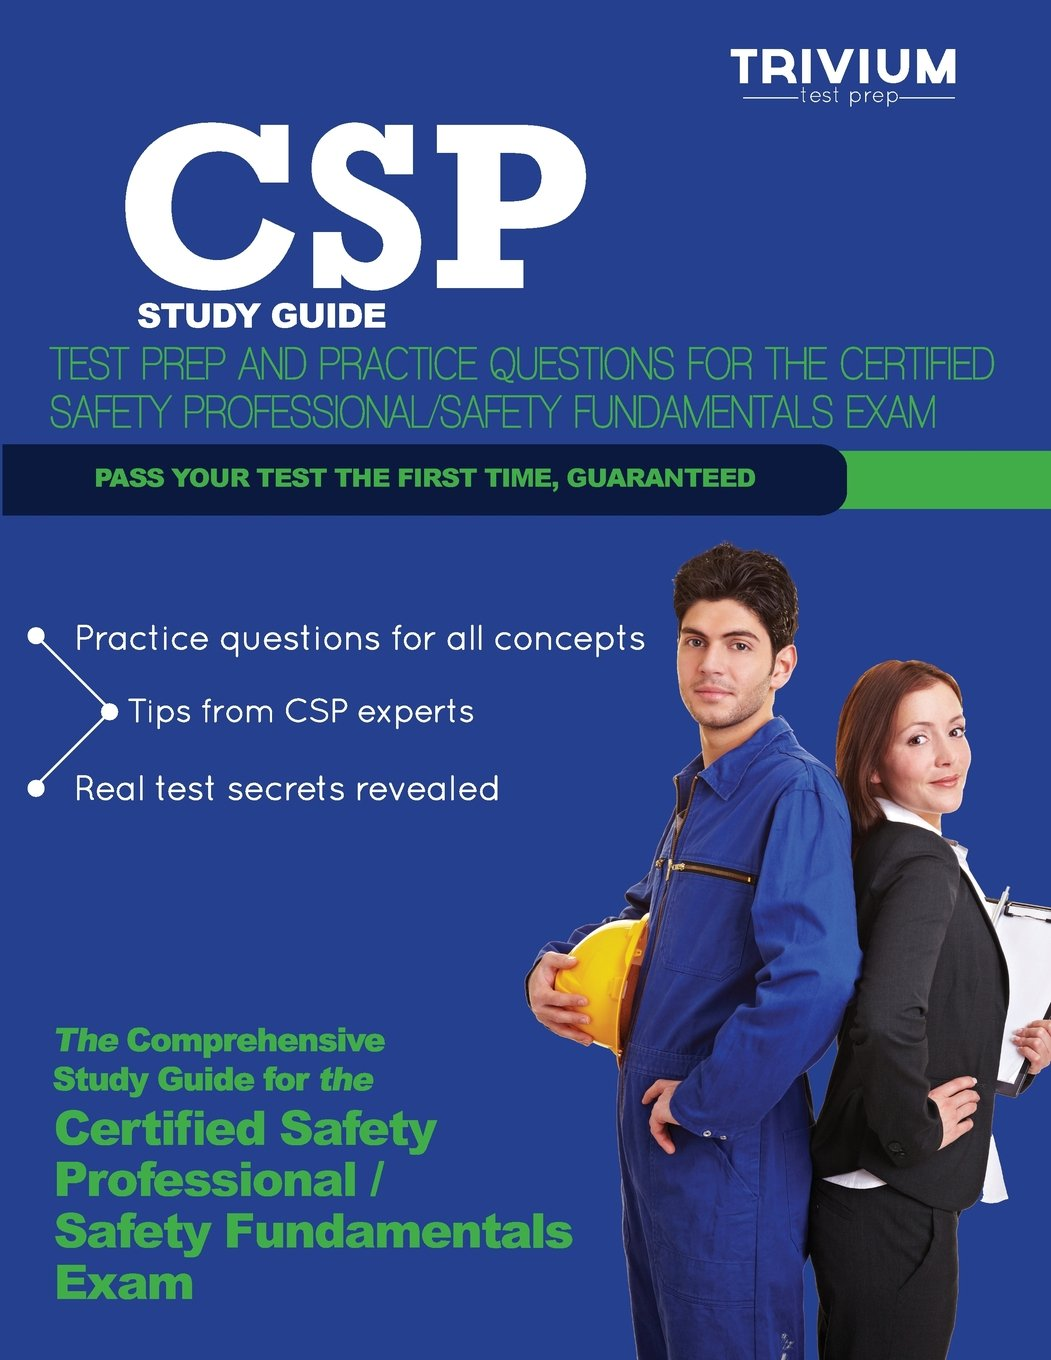 CSP Study Guide: Test Prep and Practice Questions for the Certified Safety  Professional Exam: Trivium Test Prep: 9781939587947: Books - Amazon.ca